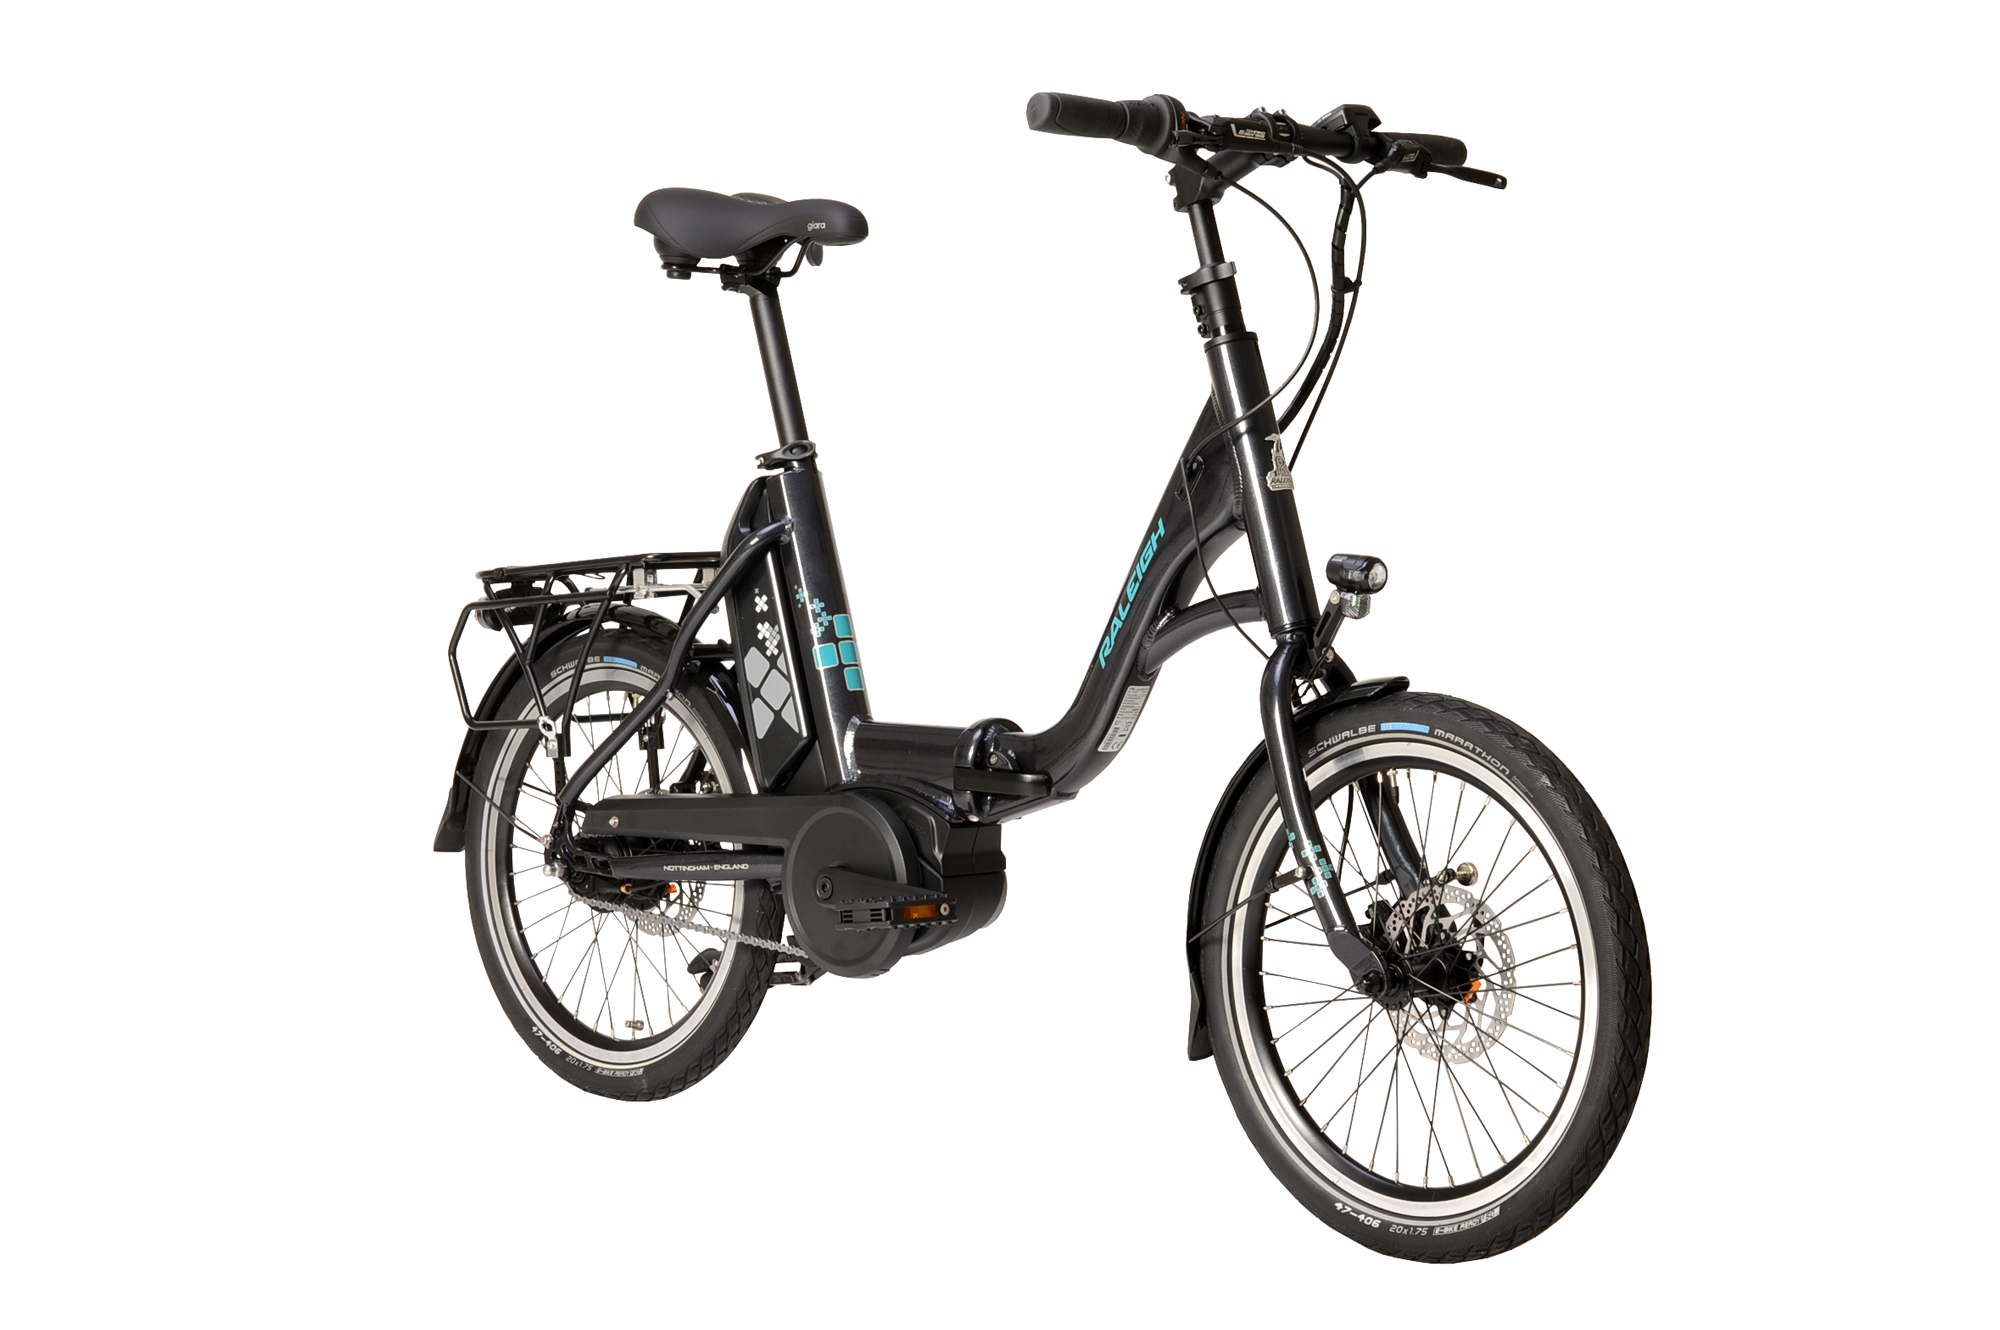 Front view of the Raleigh Kompact electric folding bike